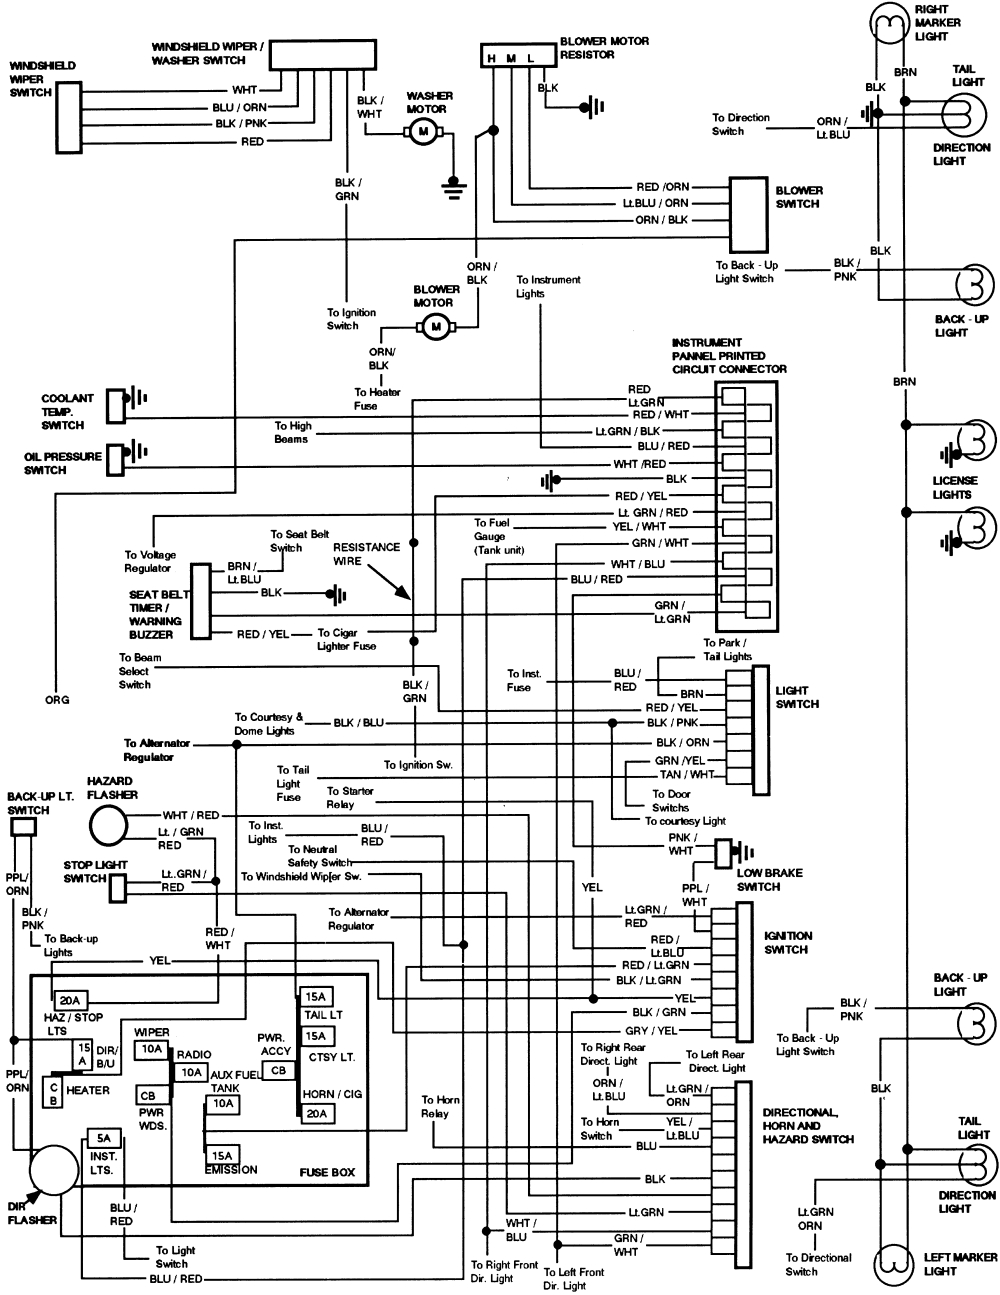 86 ford taurus wiring diagram free picture